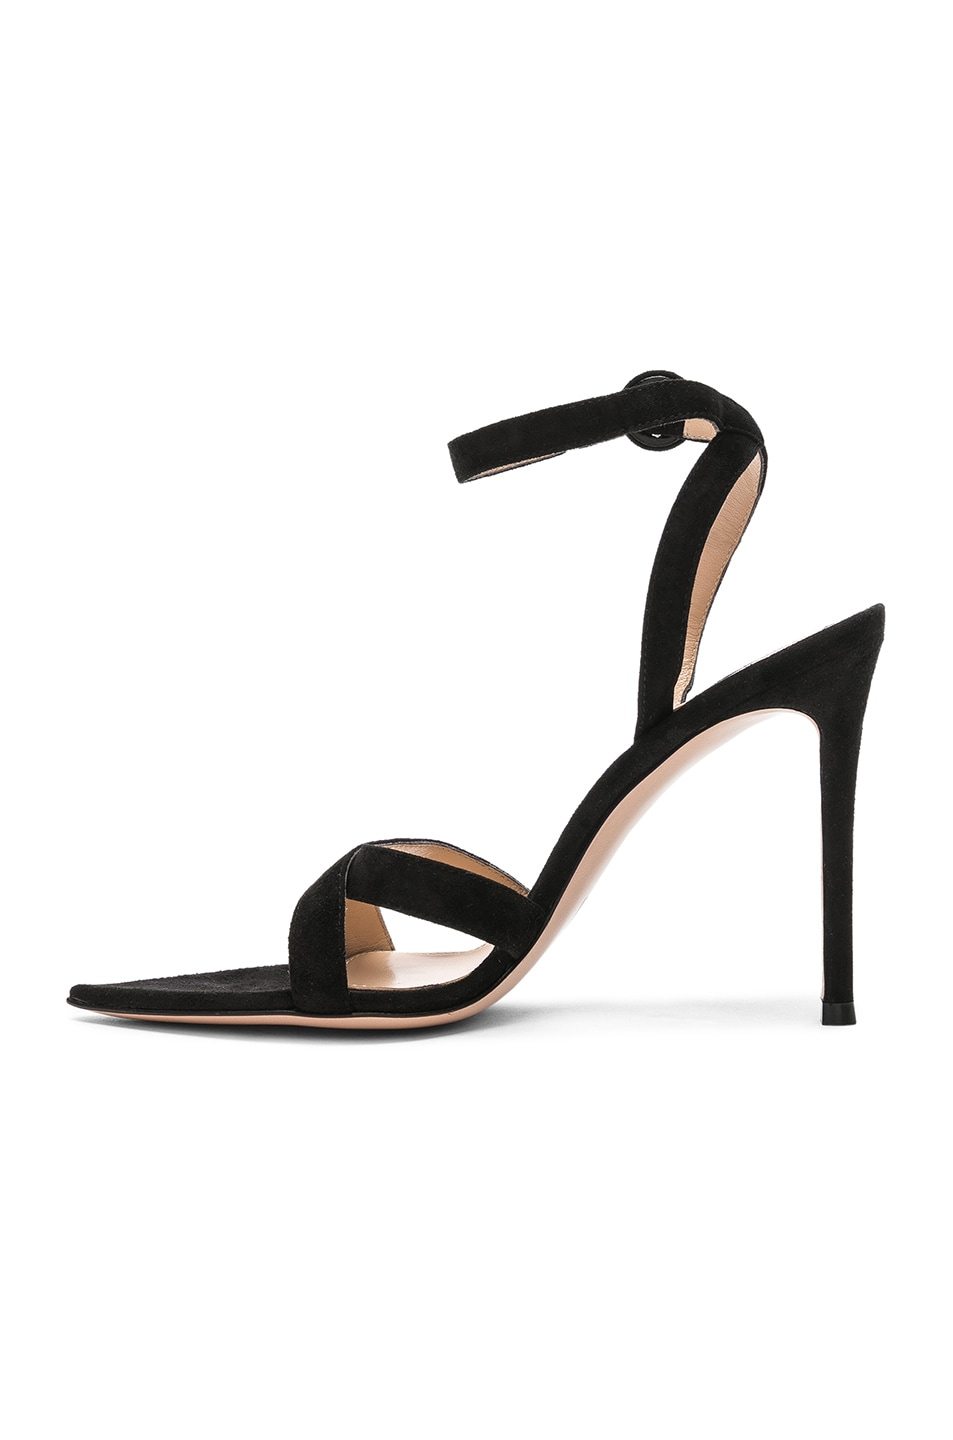 Image 5 of Gianvito Rossi Suede Alixia Ankle Strap Sandals in Black